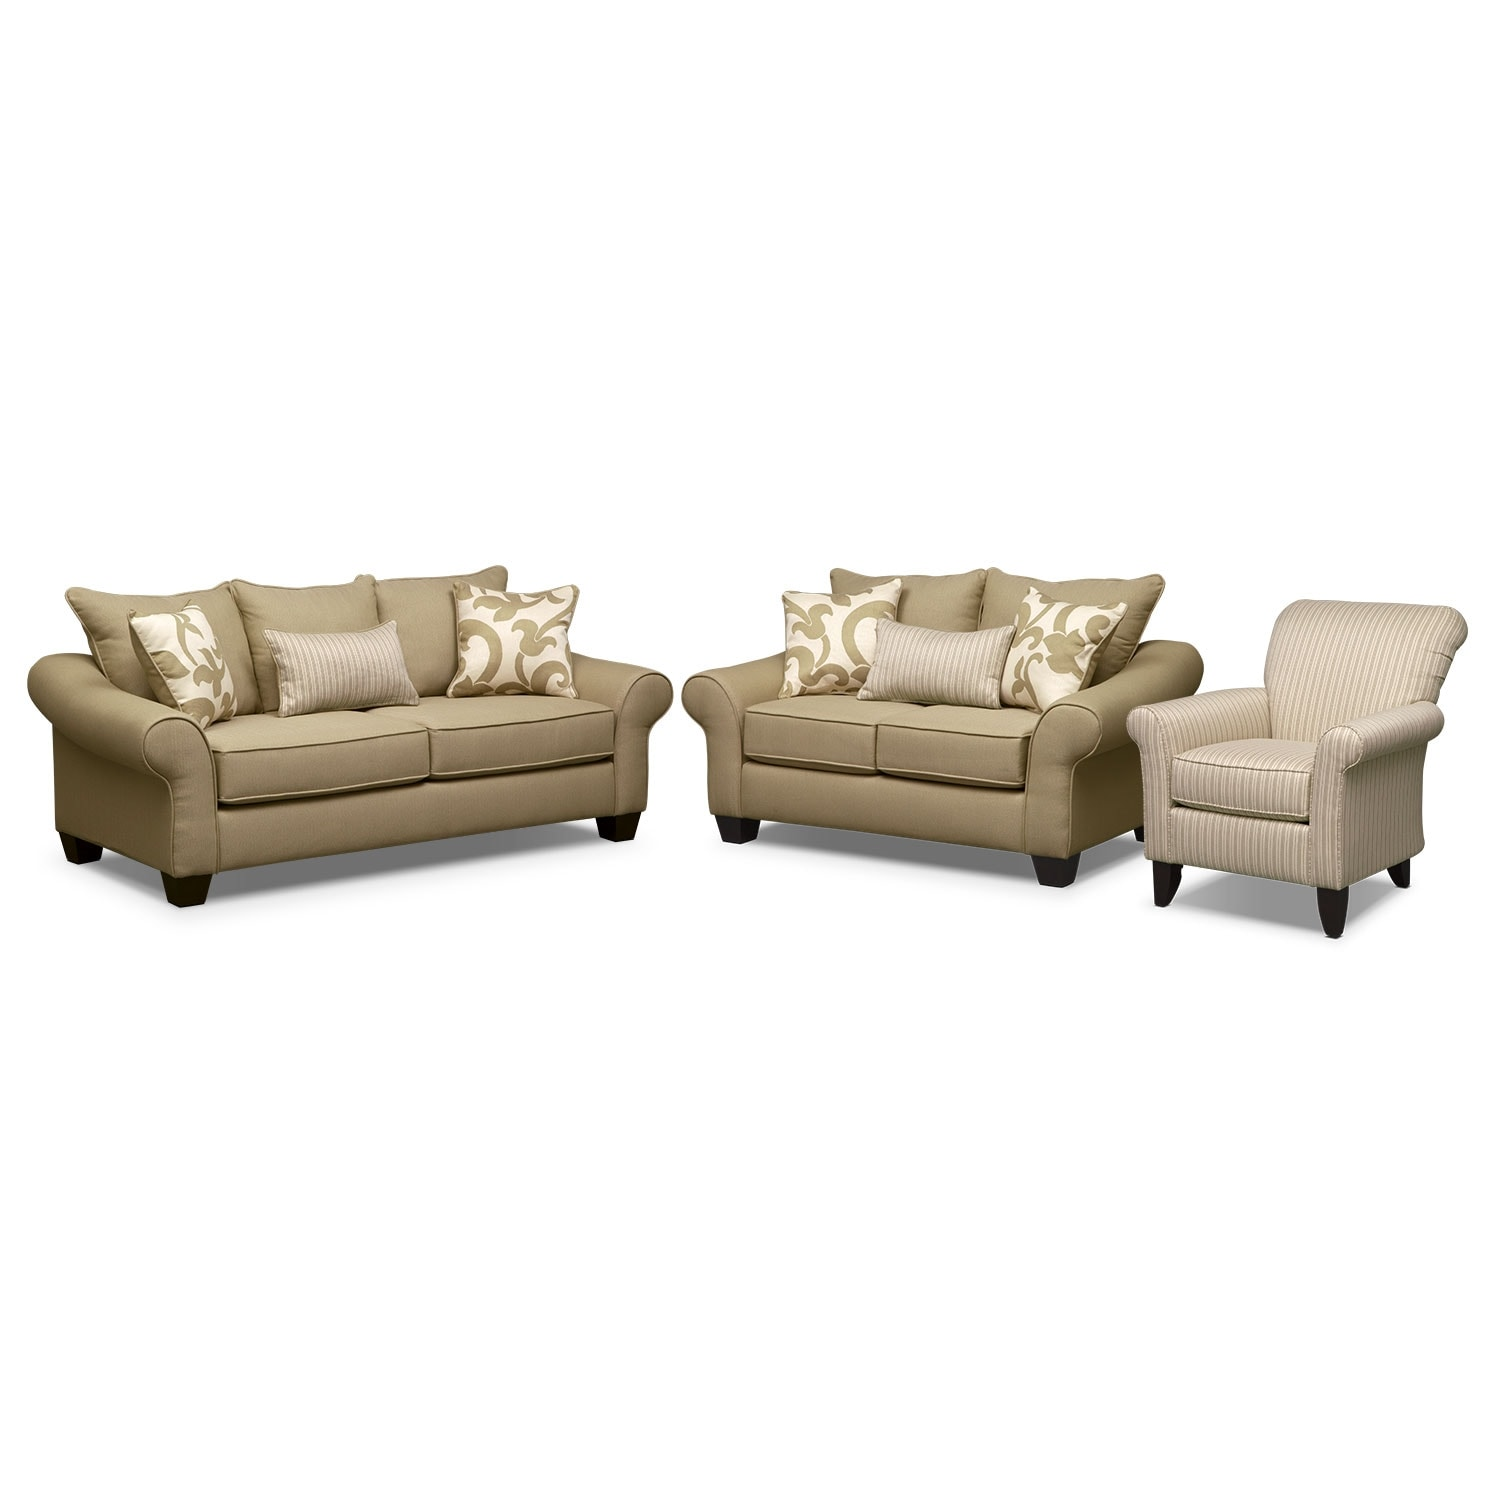 Living Room Furniture - Colette Sofa, Loveseat and Accent Chair Set - Khaki